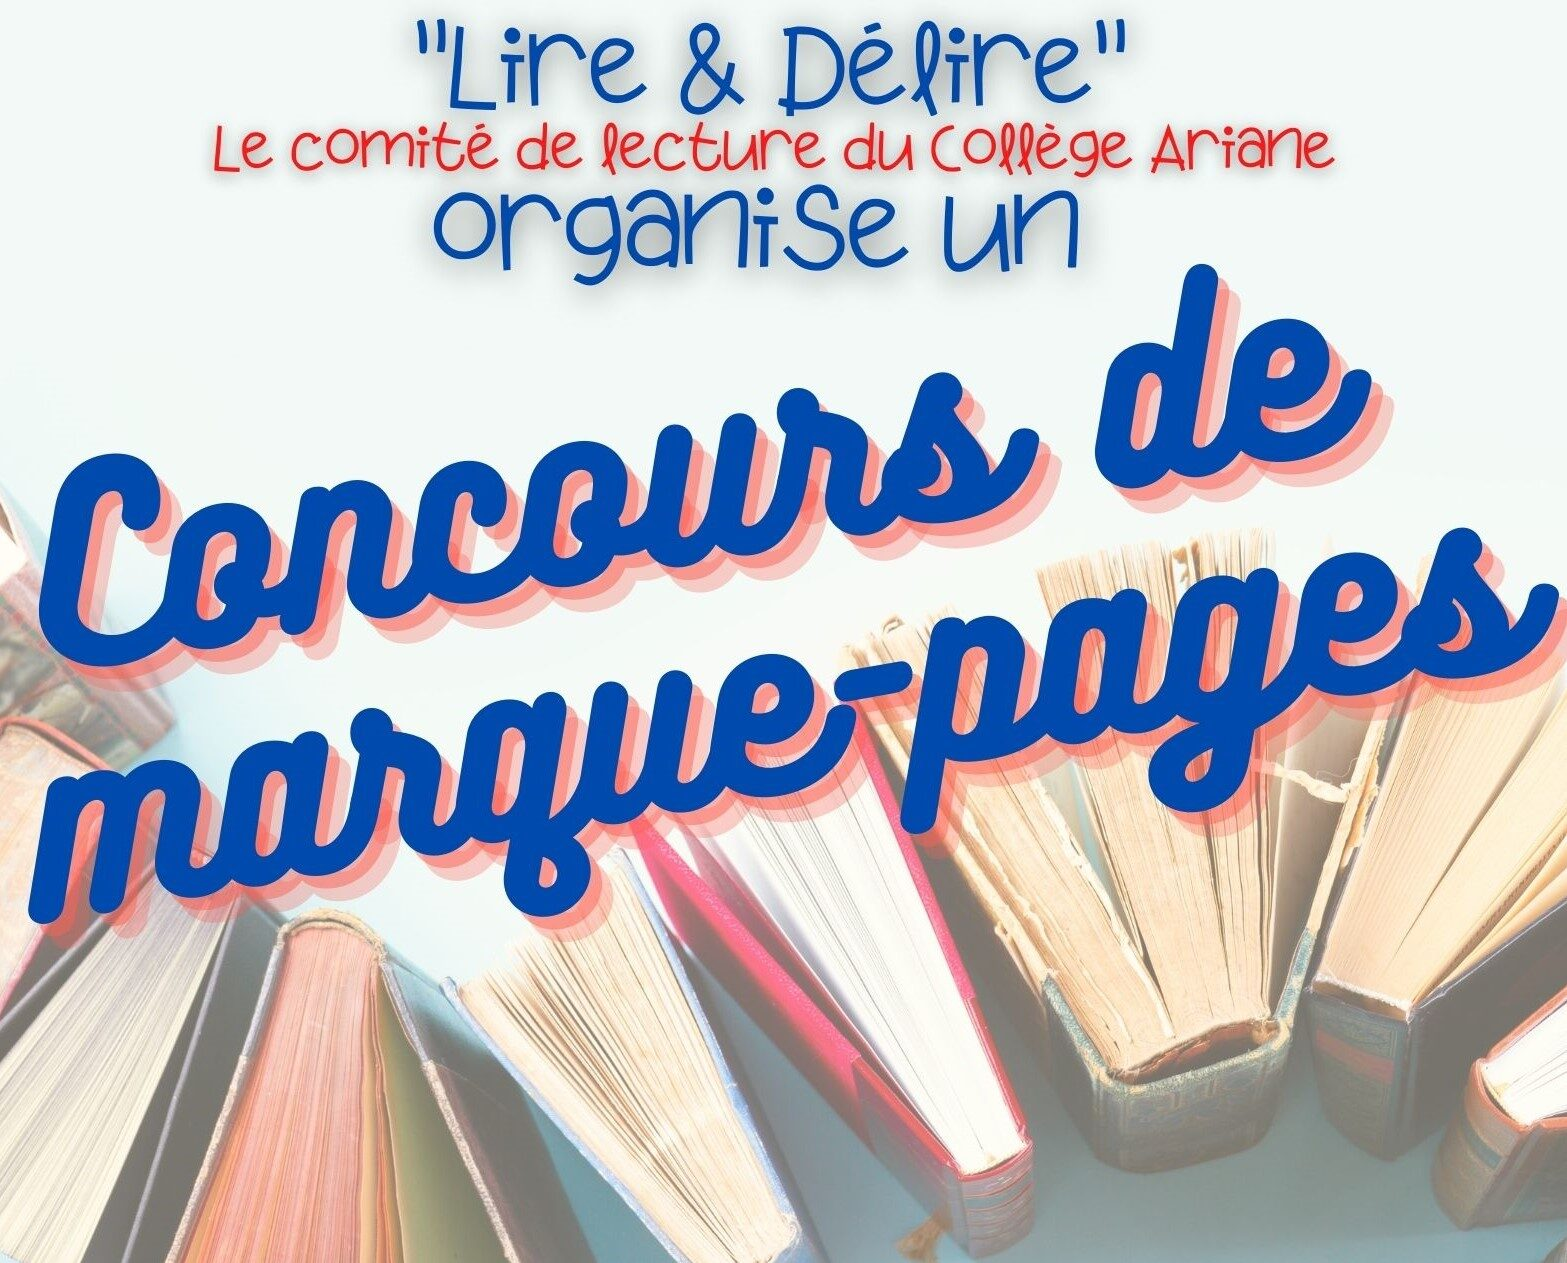 Concours marque-page 2.jpg